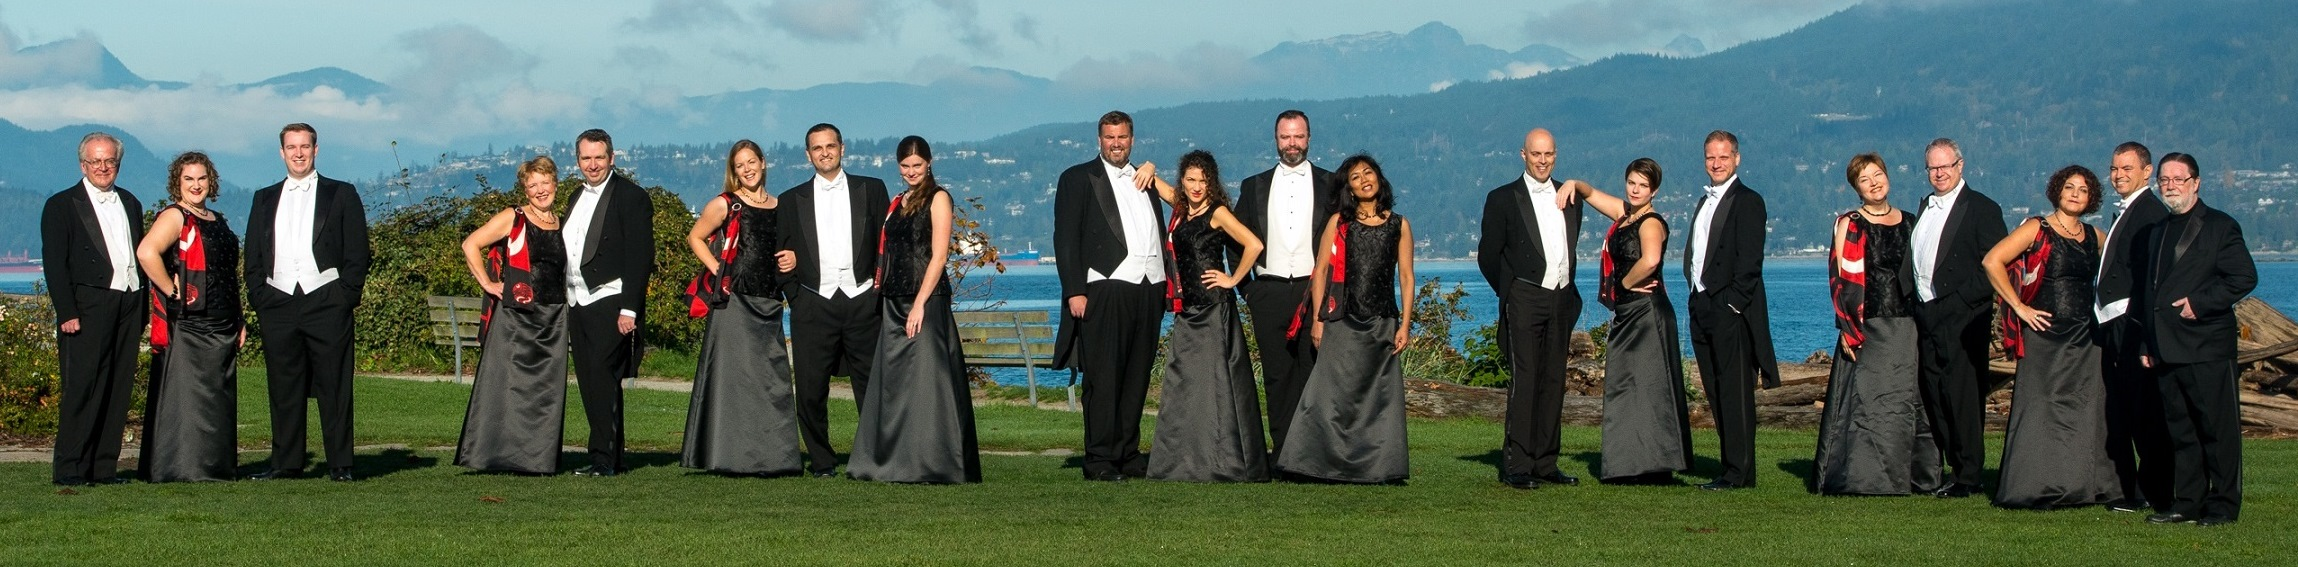 Vancouver Chamber Choir (4458 cropped)